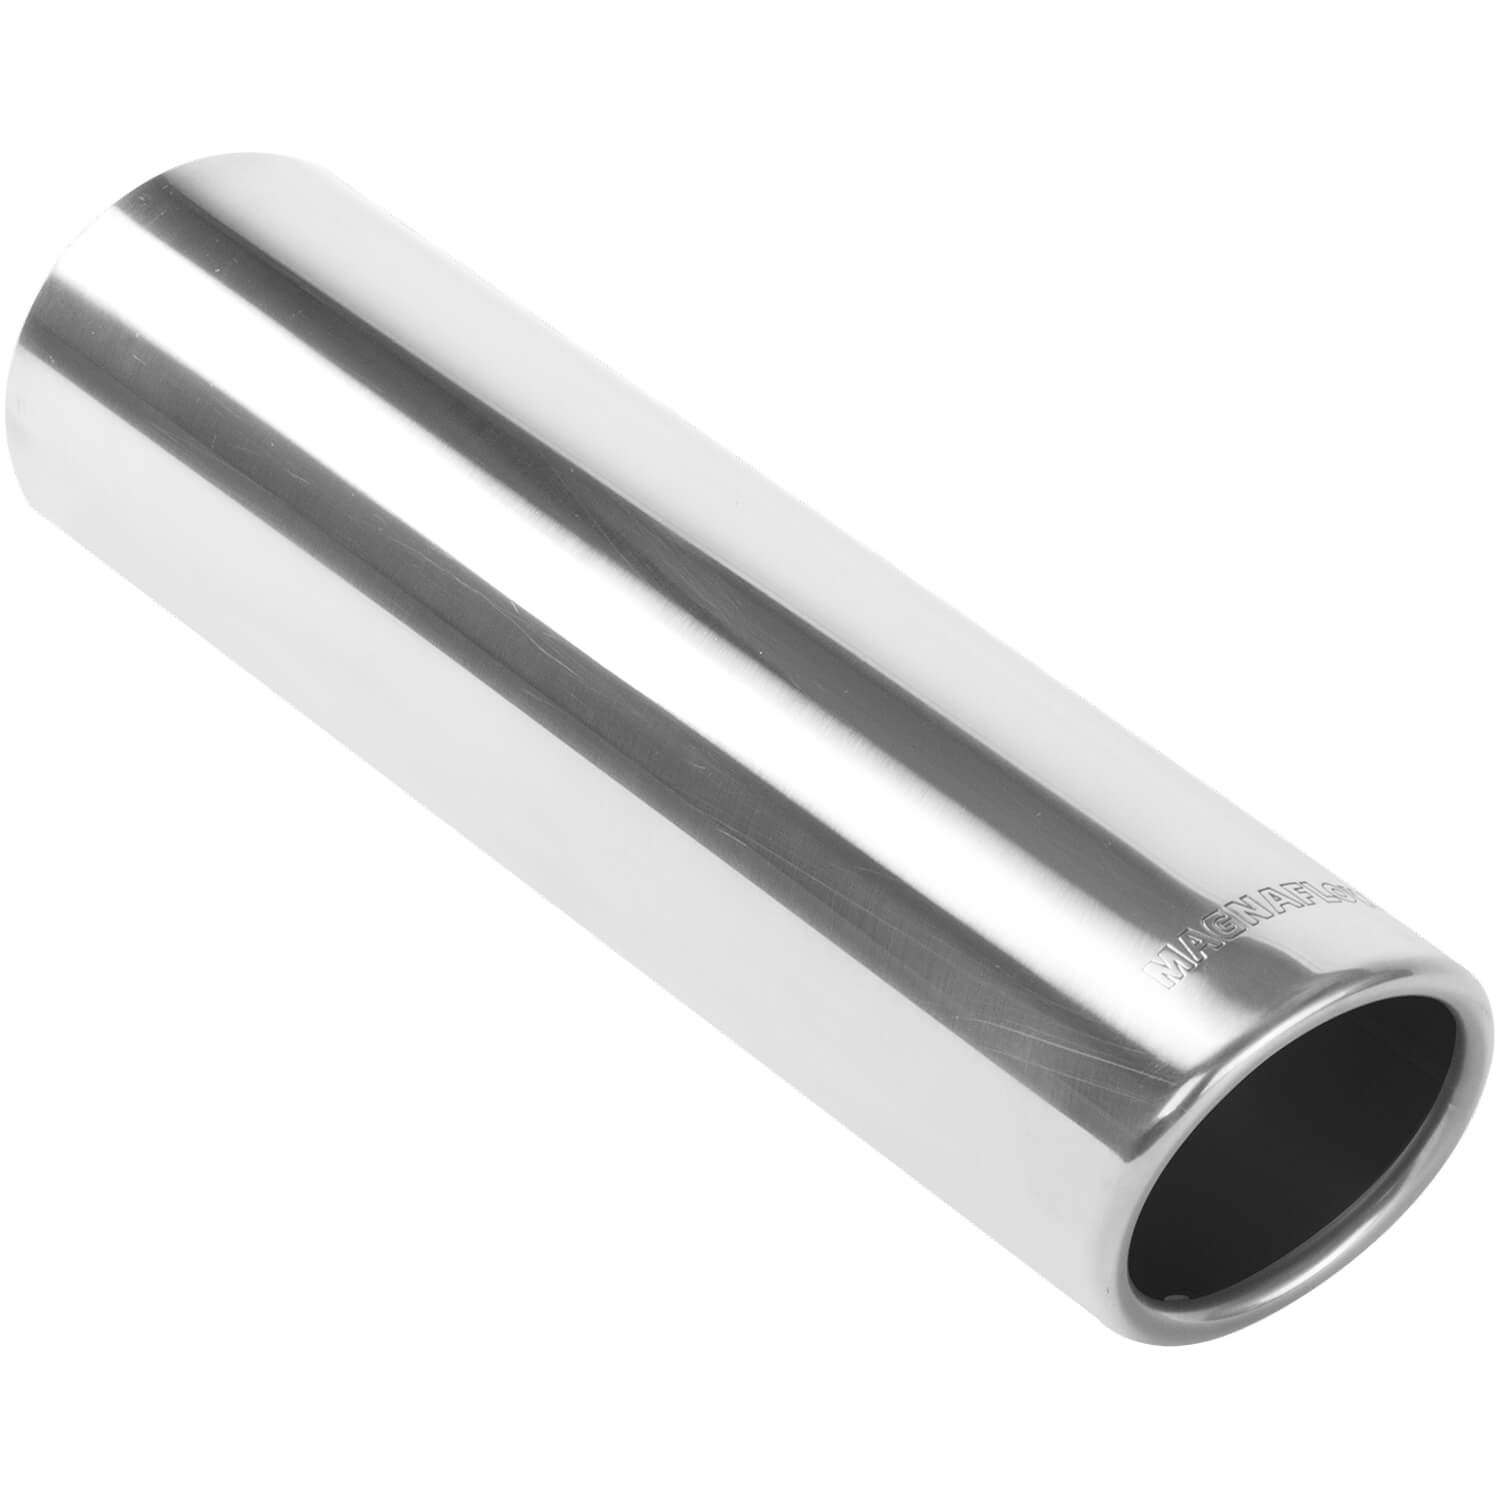 Magnaflow 35204 - Magnaflow Polished Stainless Steel Weld-On Exhaust Tips